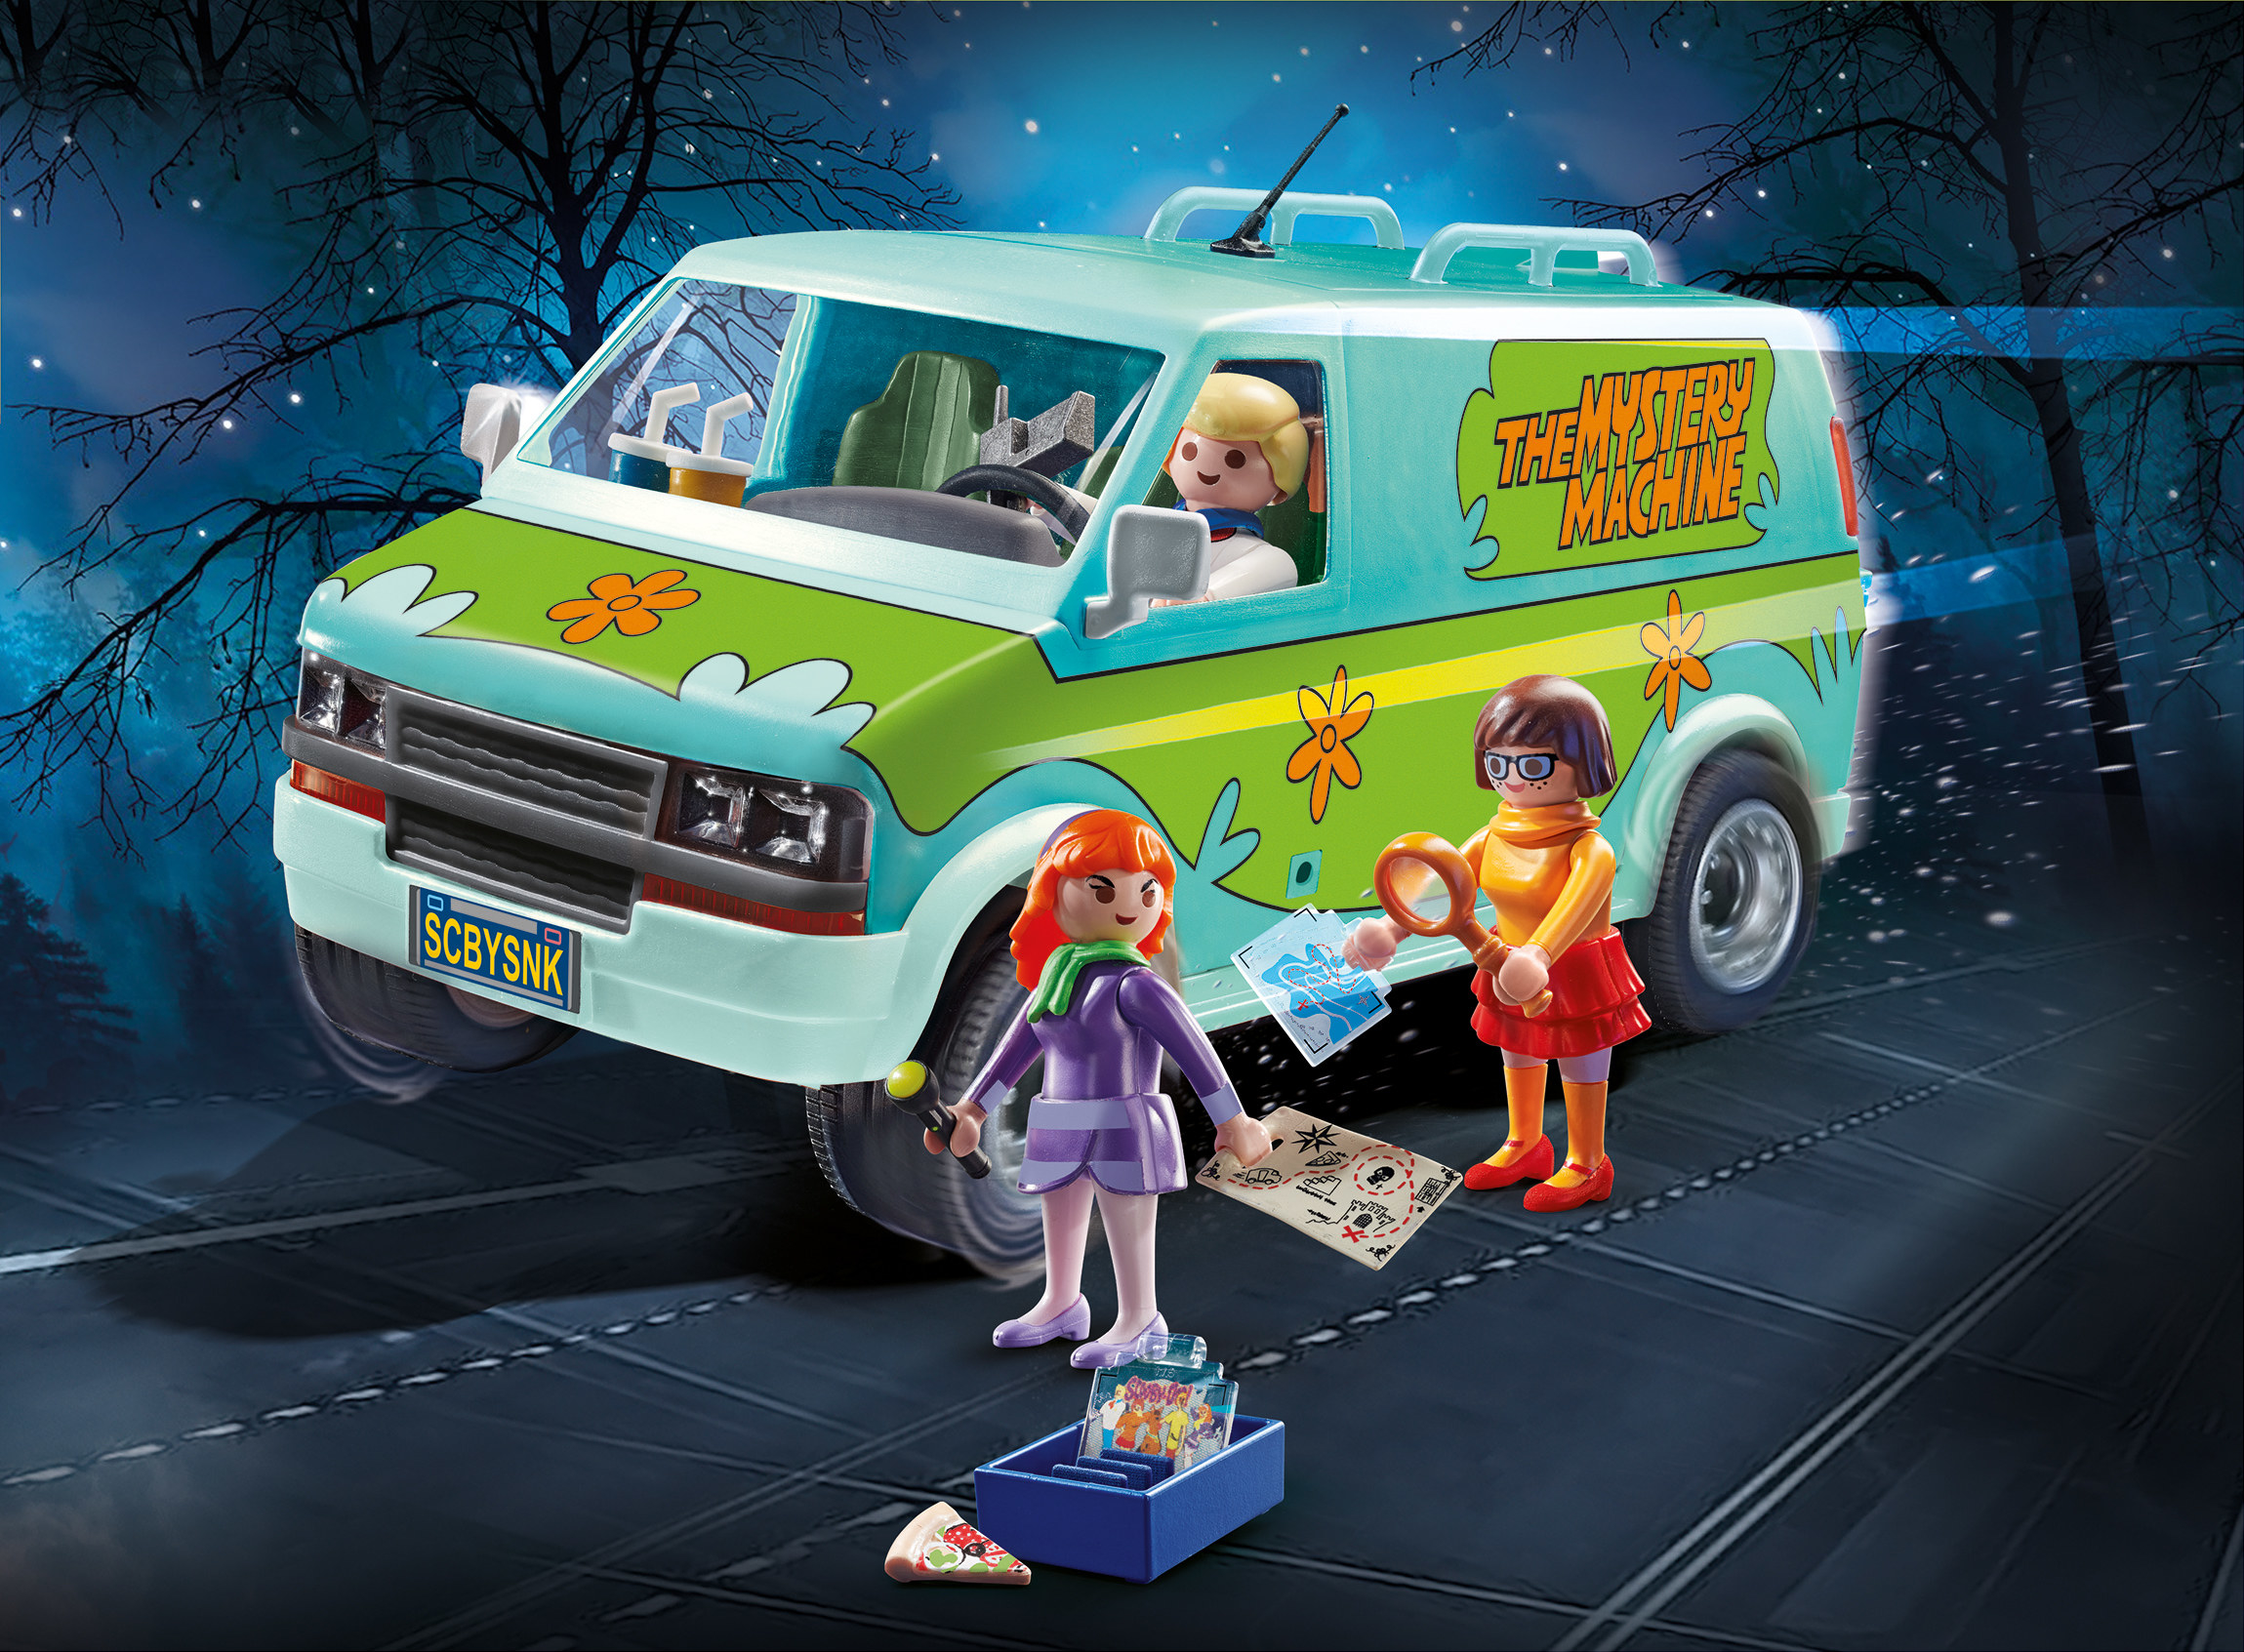 A Mystery Machine toy with figures of Fred, Daphne and Velma from the Scooby Doo television series